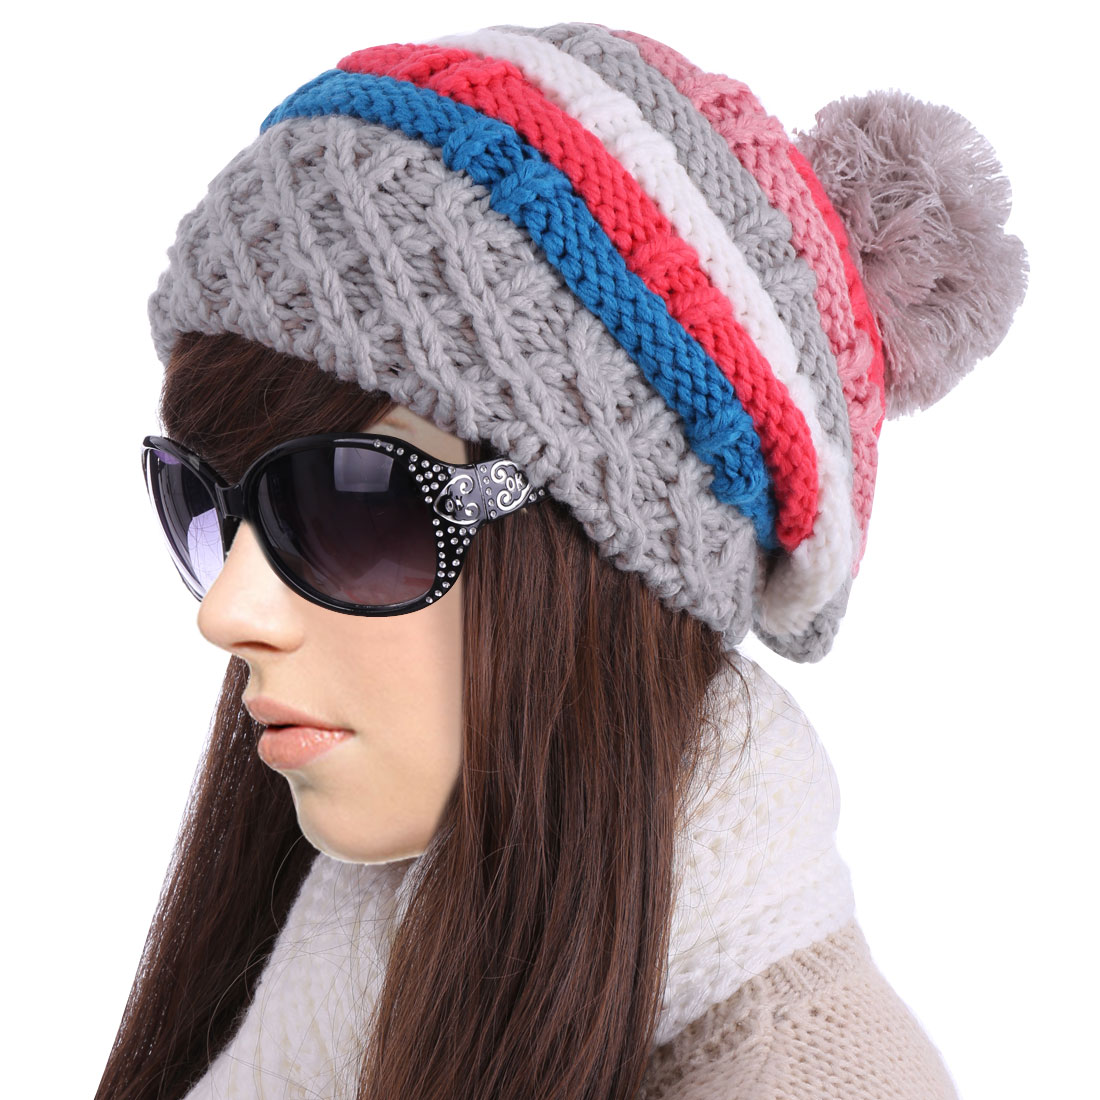 Ladies Chic Colorful Striped Light Gray Red Winter Cable-Knitted Hat